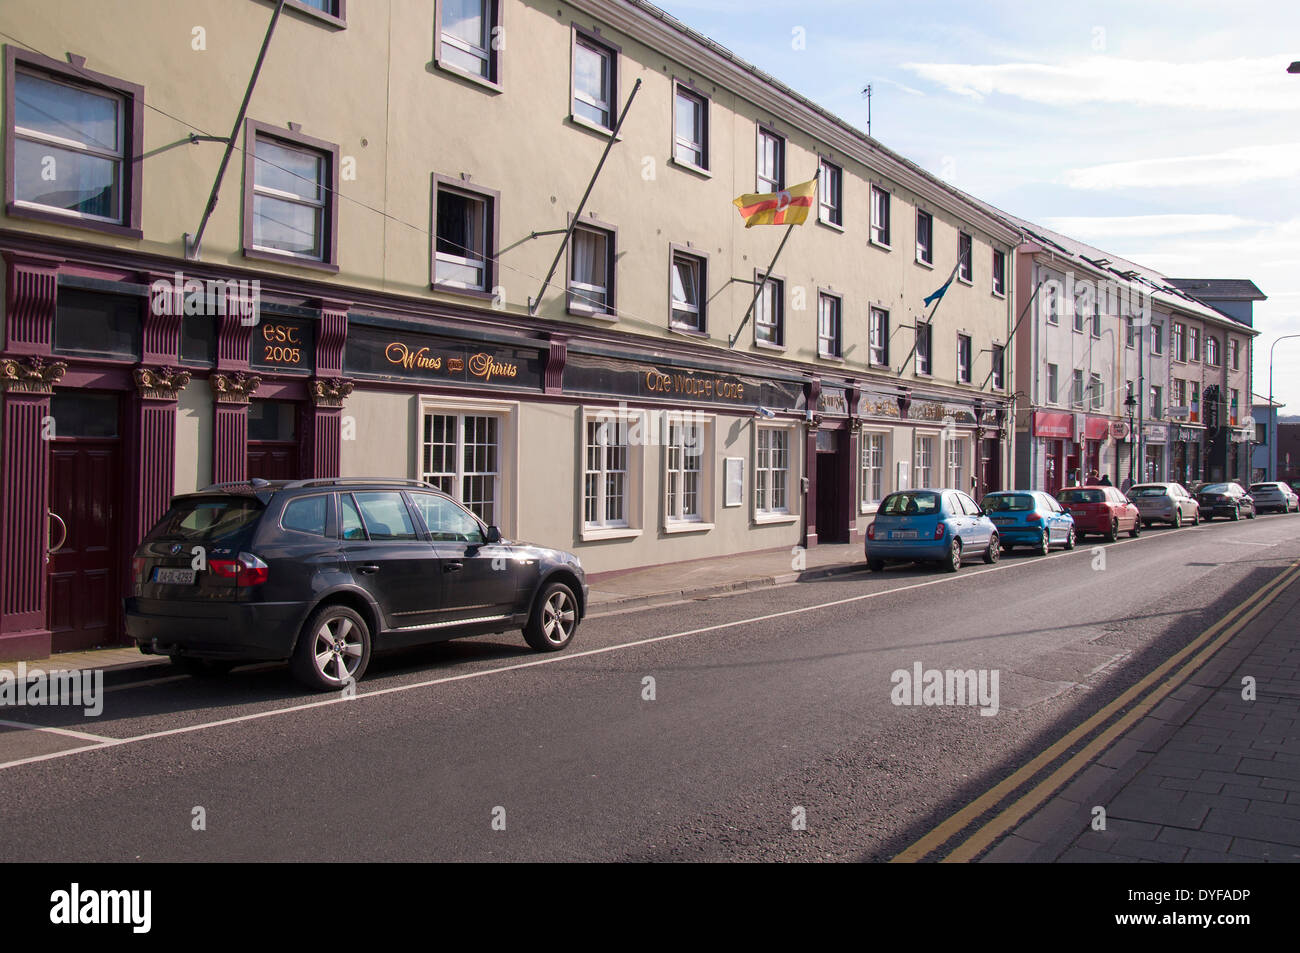 The Wolfe Tone pub bar in Letterkenny County Donegal Ireland - Stock Image